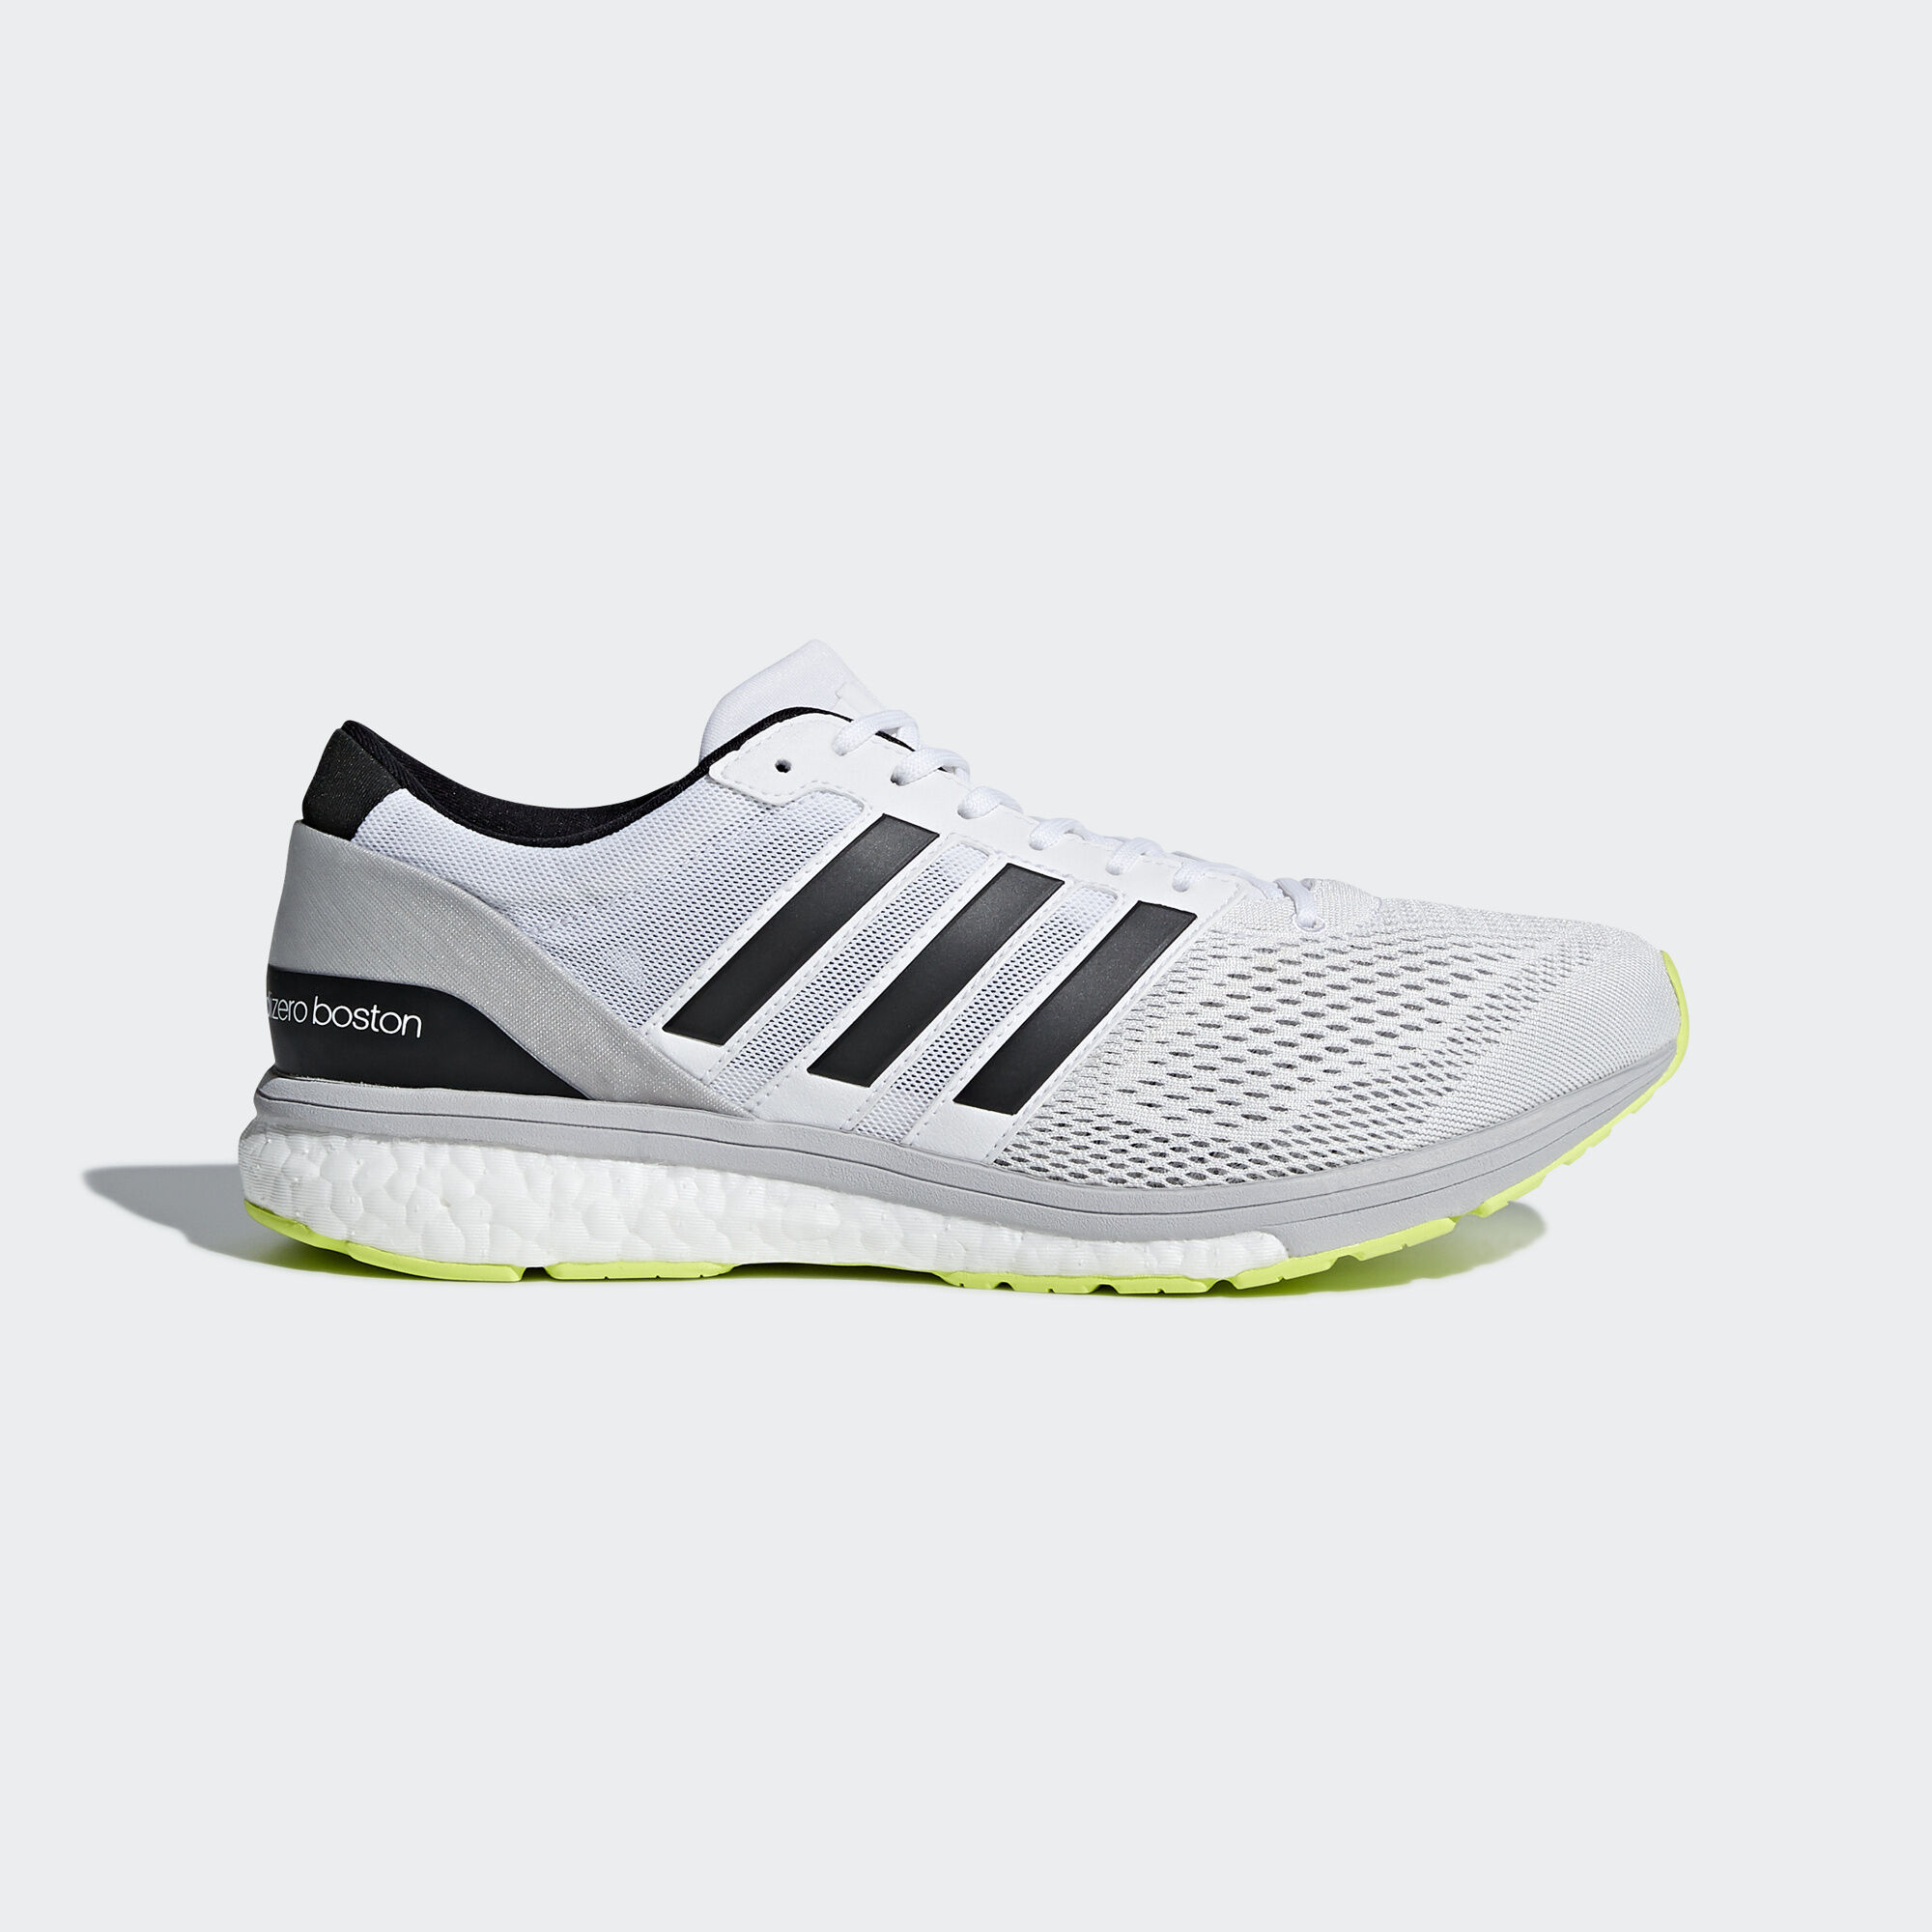 Adidas Sprint Training Shoes